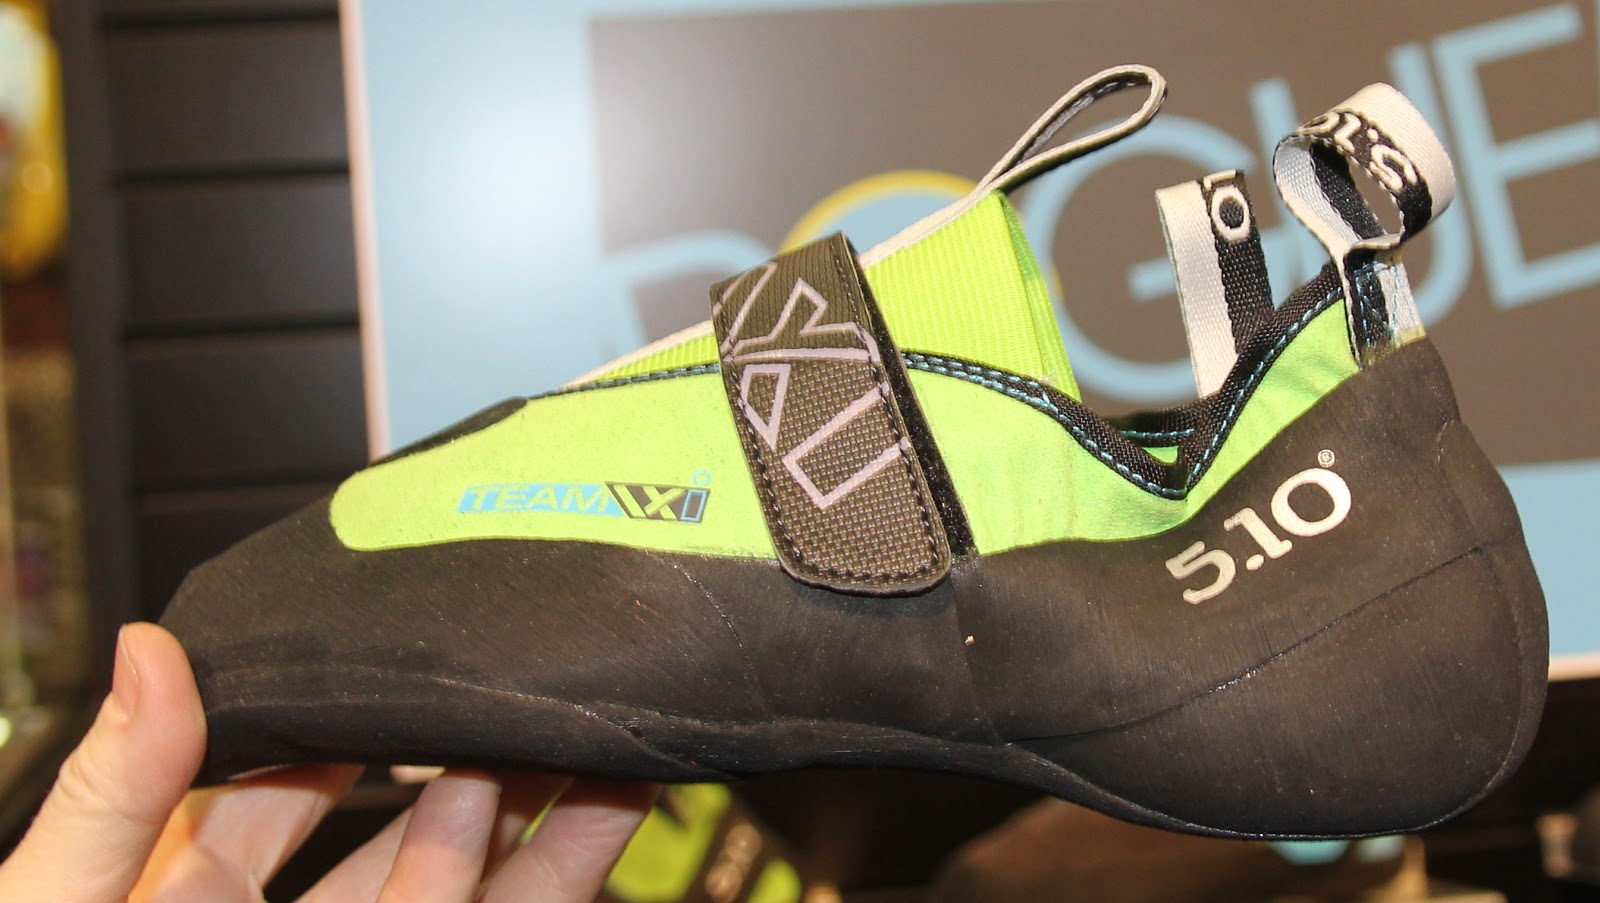 526897f4769 TEAM VXi-neon charcoal...with new MI6 rand that is more sensitive and  supple... comfort and form fitting-with Active Arch Support and a velcro  closure ...